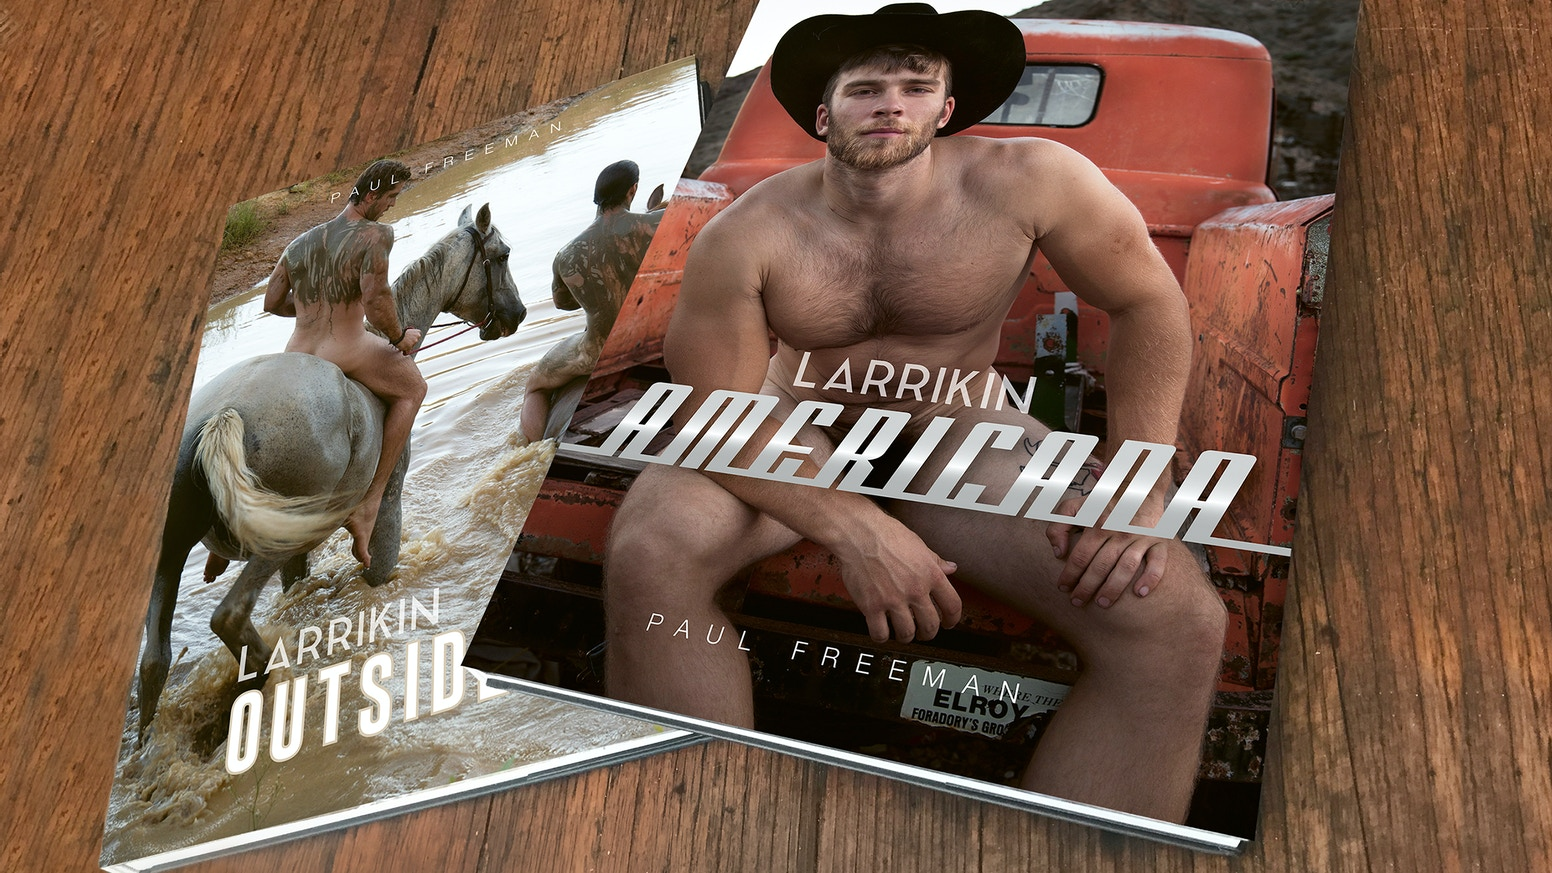 I'm Publishing And Distributing Two New Coffee Table Books Of Male Nudes And Portraits.